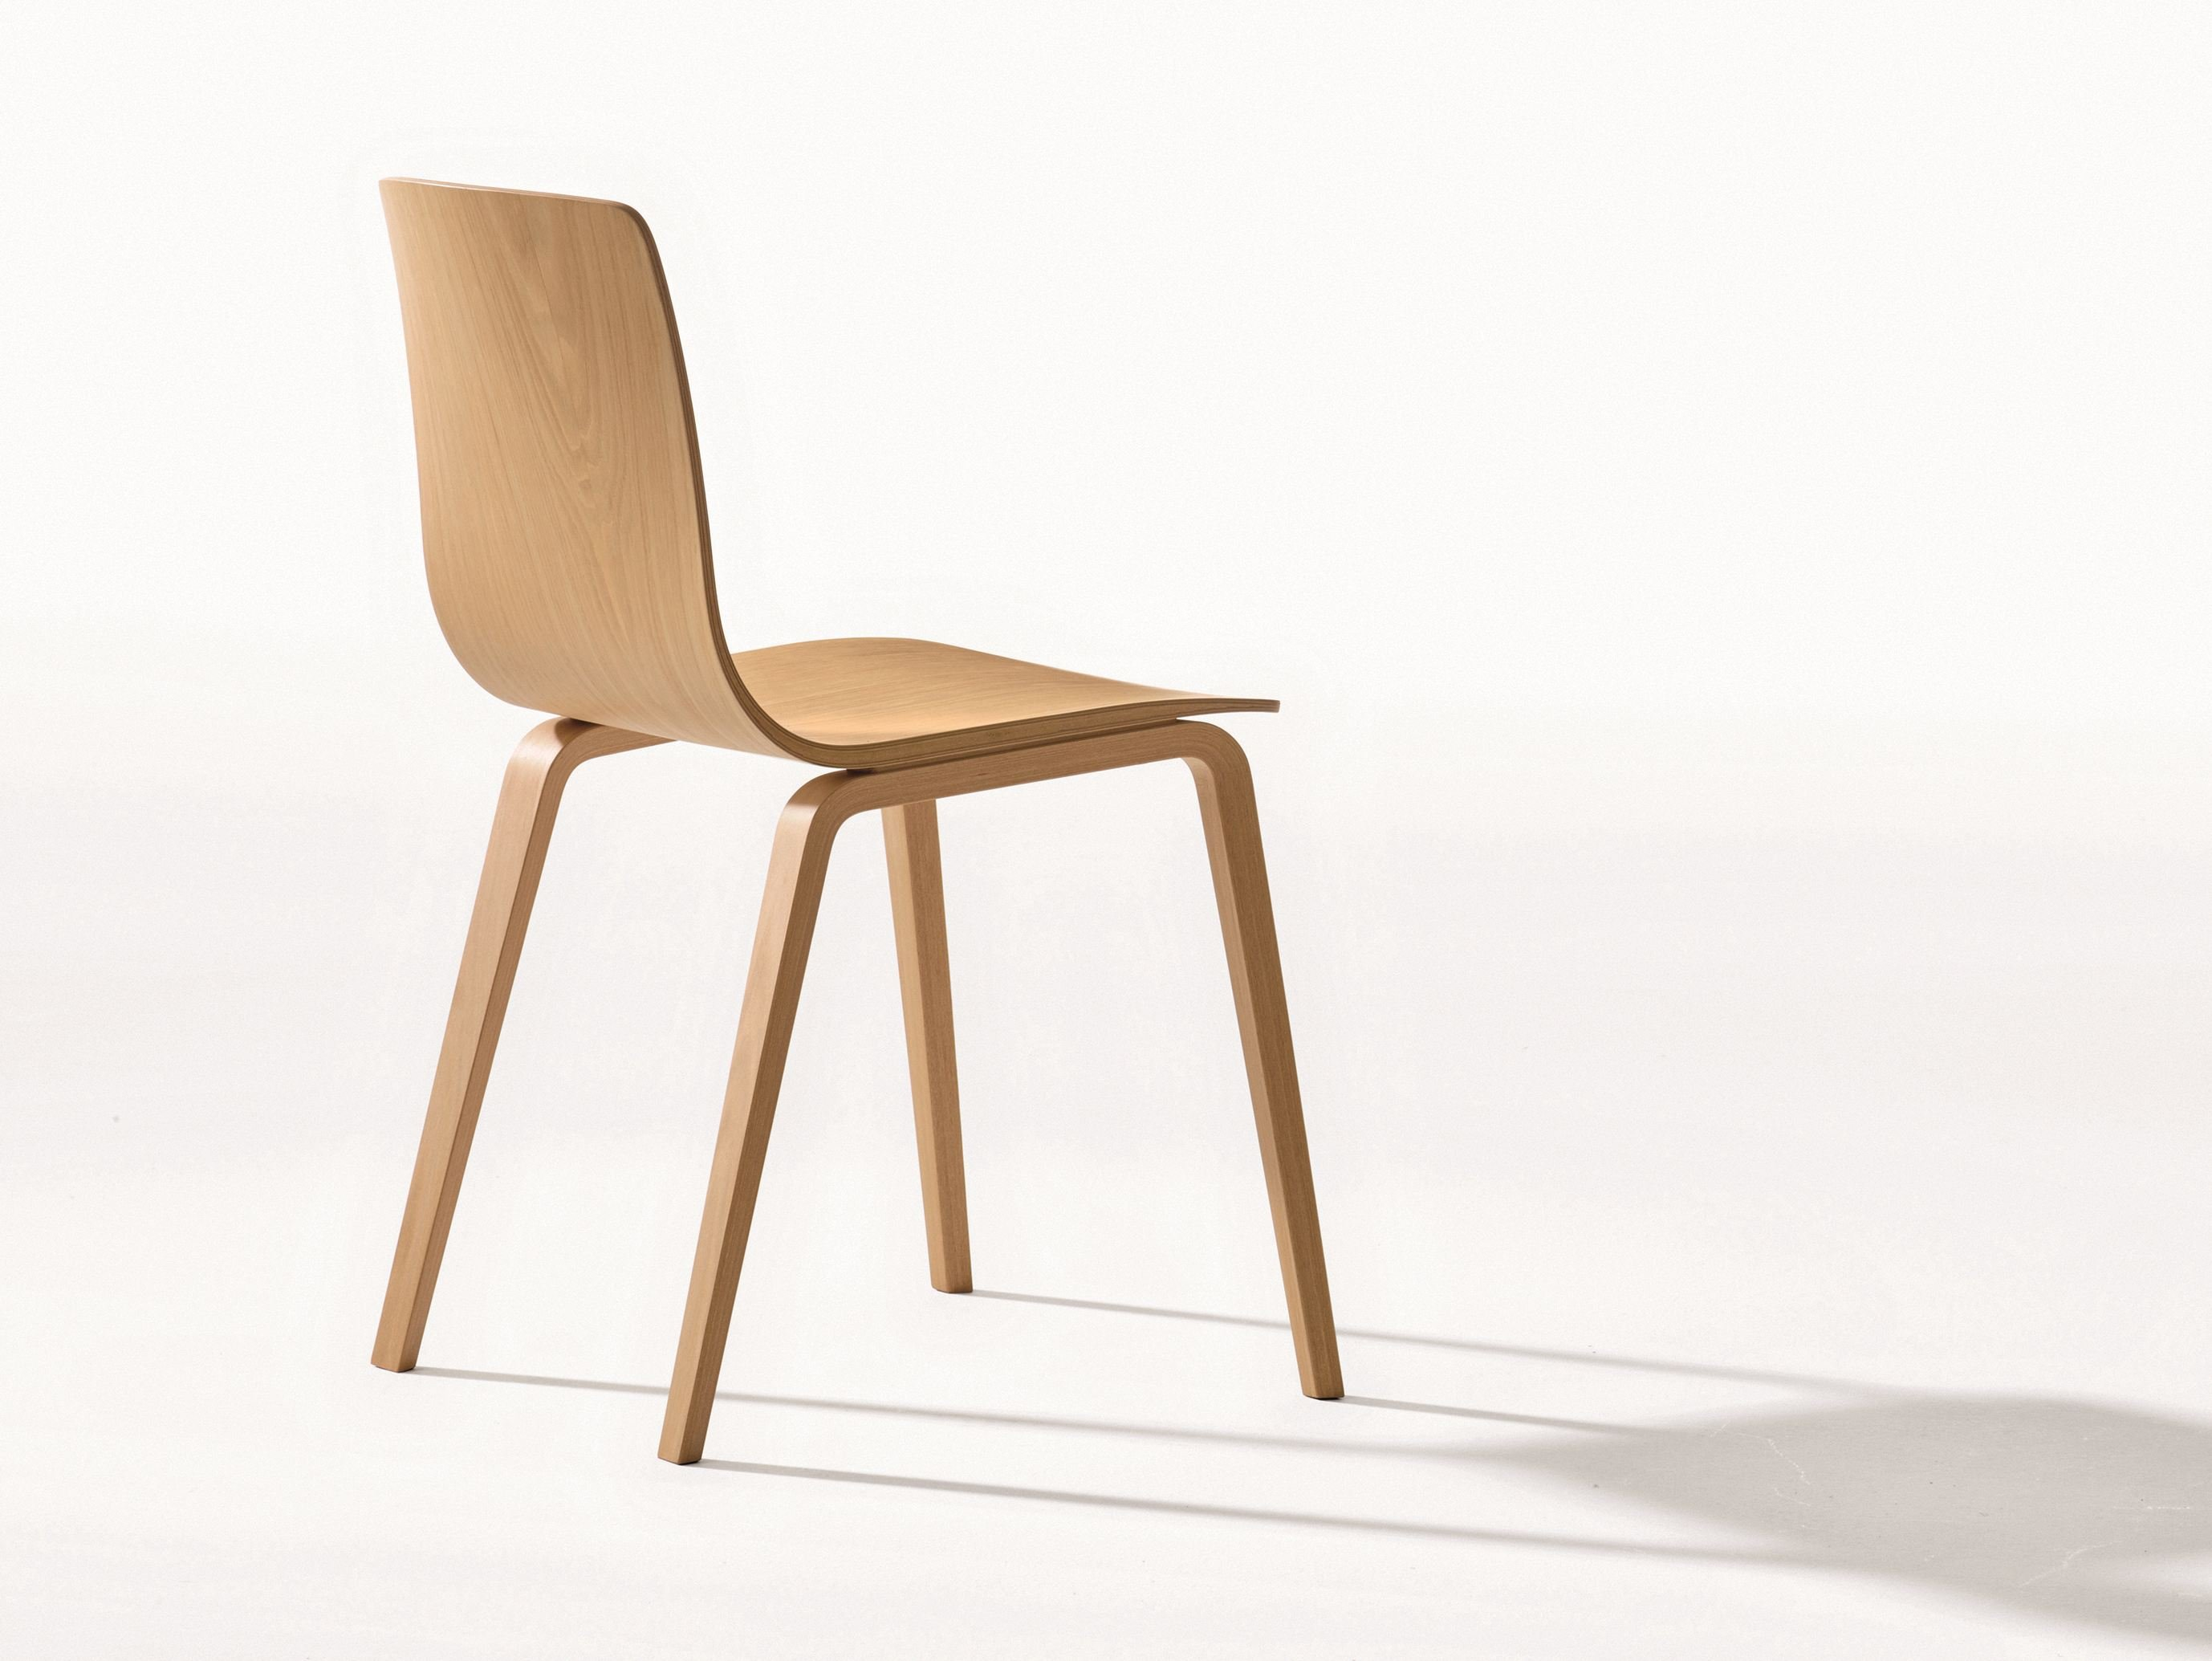 aava chaise en bois by arper design antti kotilainen On chaise en bois design